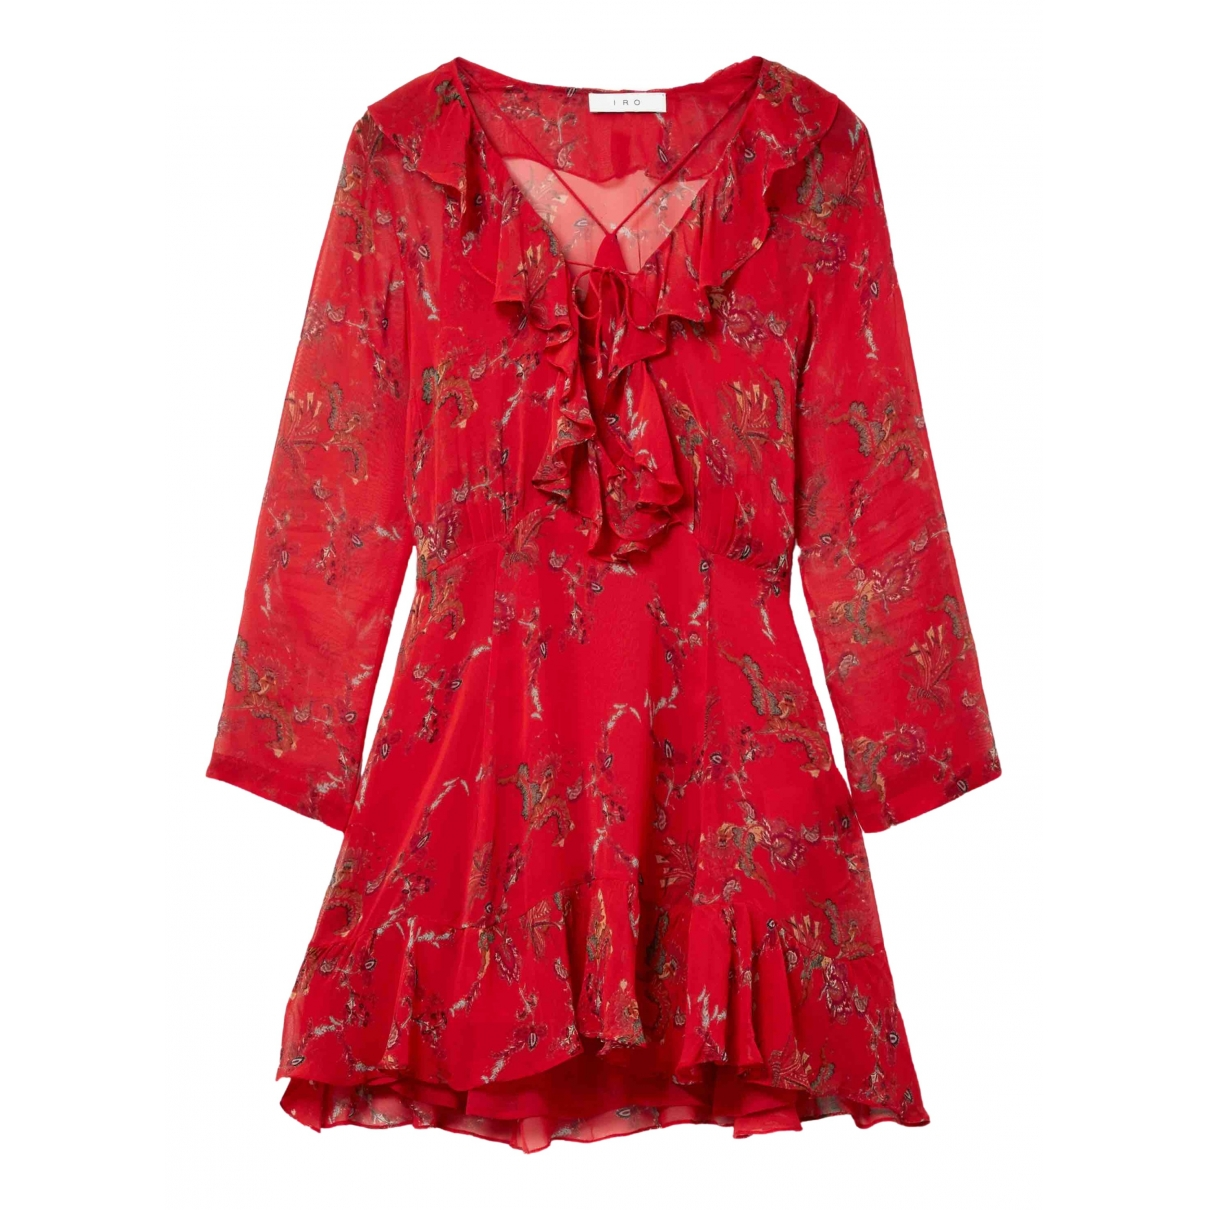 Iro \N Red dress for Women 36 FR